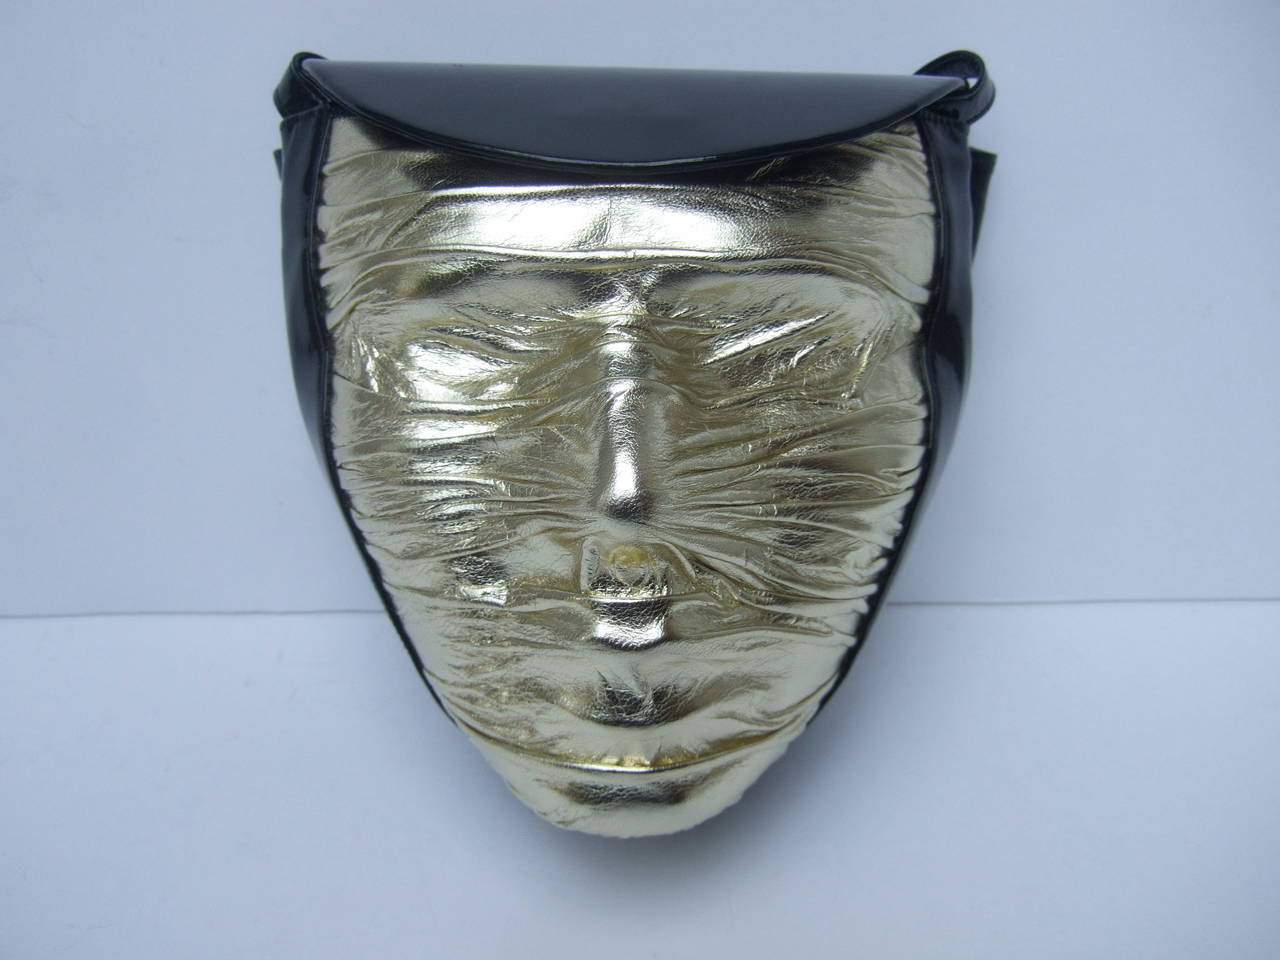 Charles Jourdan Paris Avant-Garde Mummified Handbag c 1980s For Sale 1